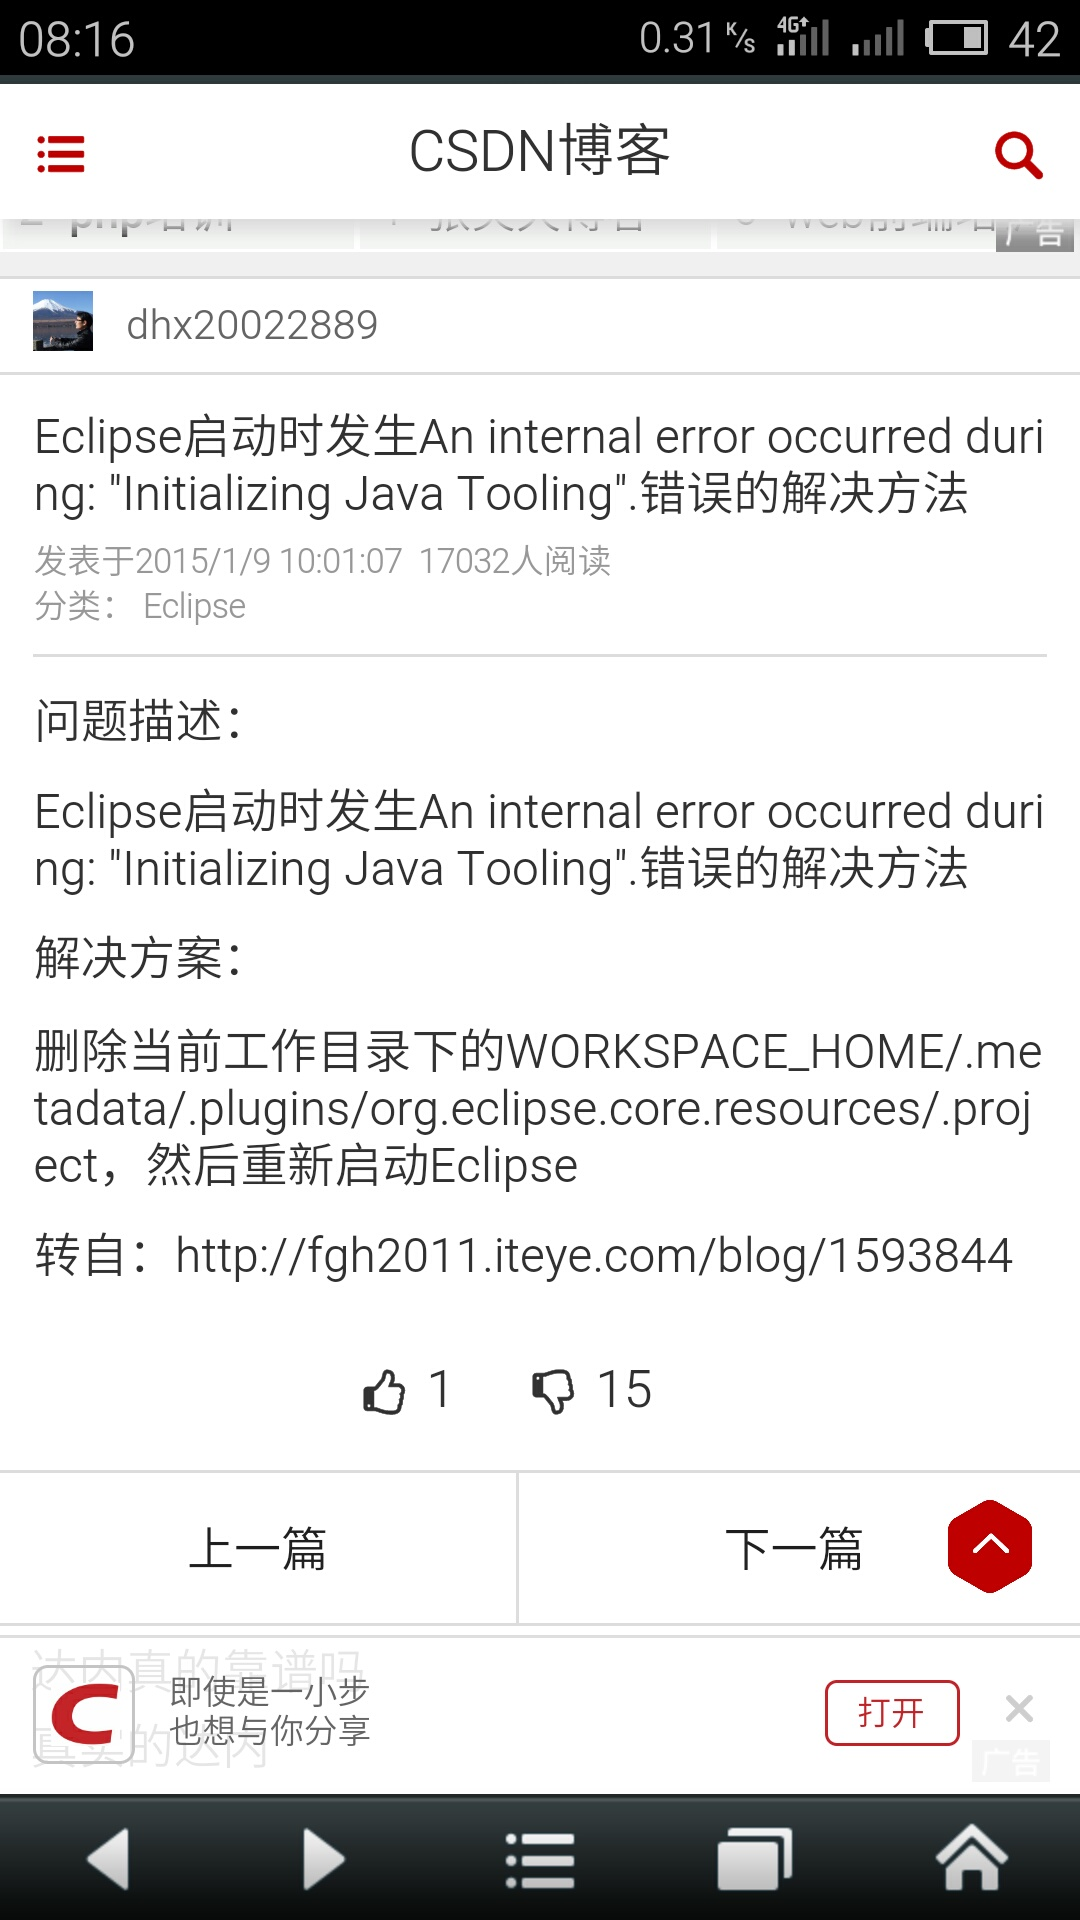 Eclipse启动时发生An internal error occurred duri ng: Initializing Java Tooling